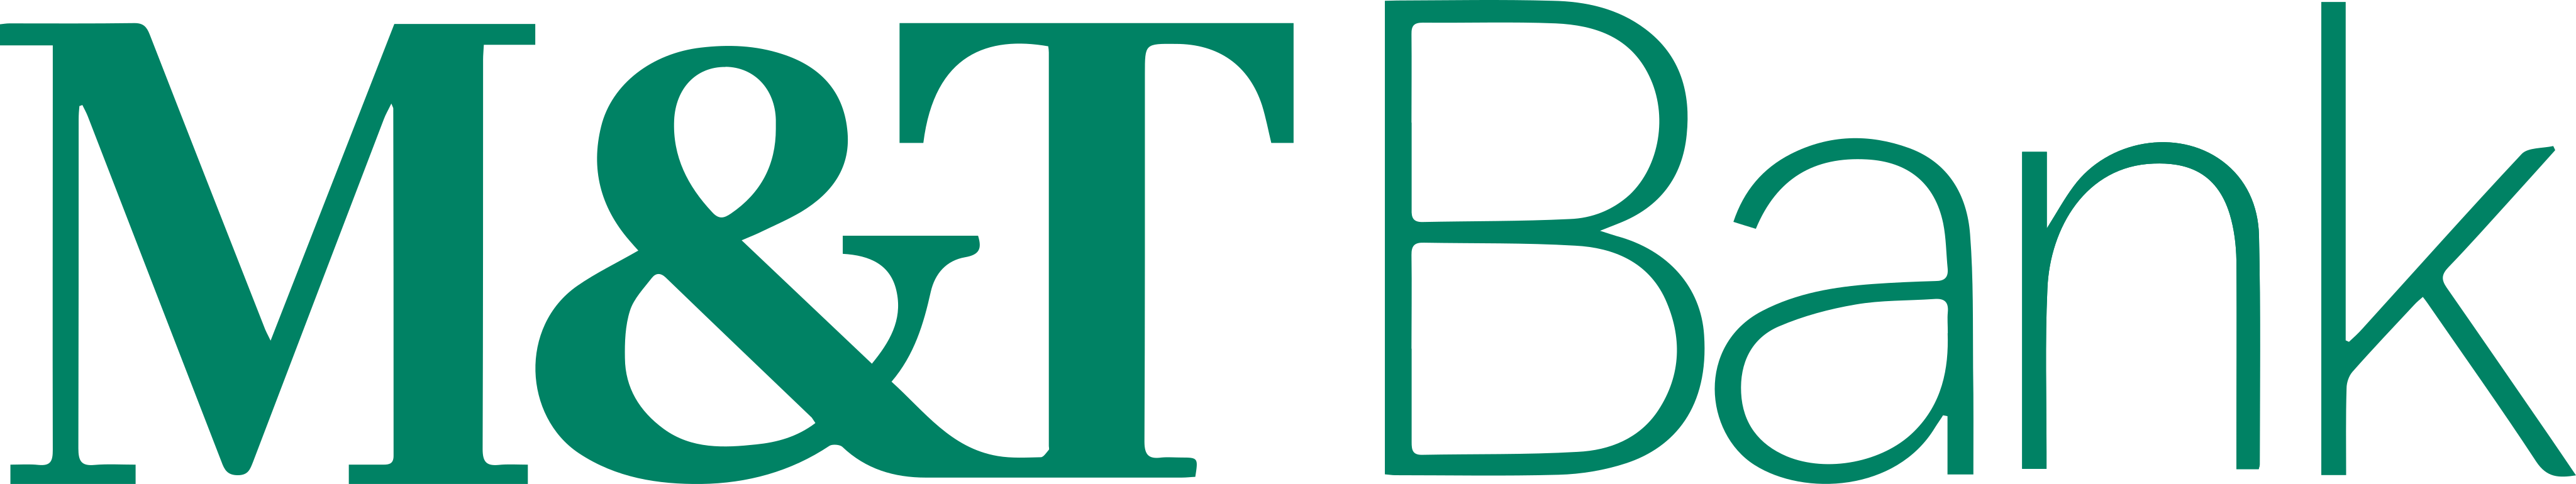 M&T Bank Logo.